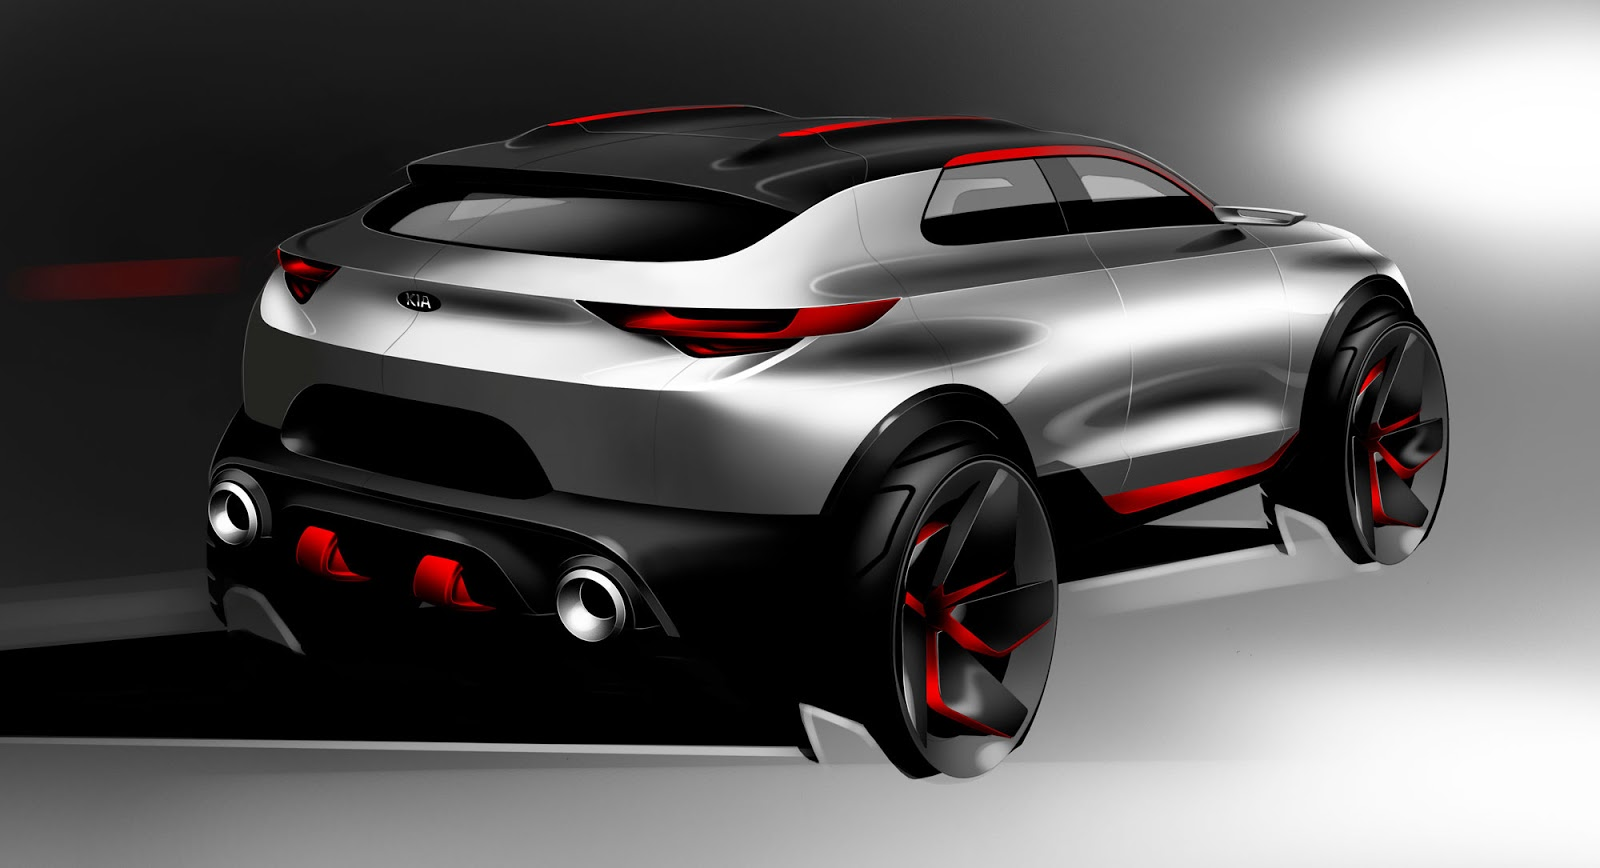 Kia Stonic sketch - option 2 styling from the rear